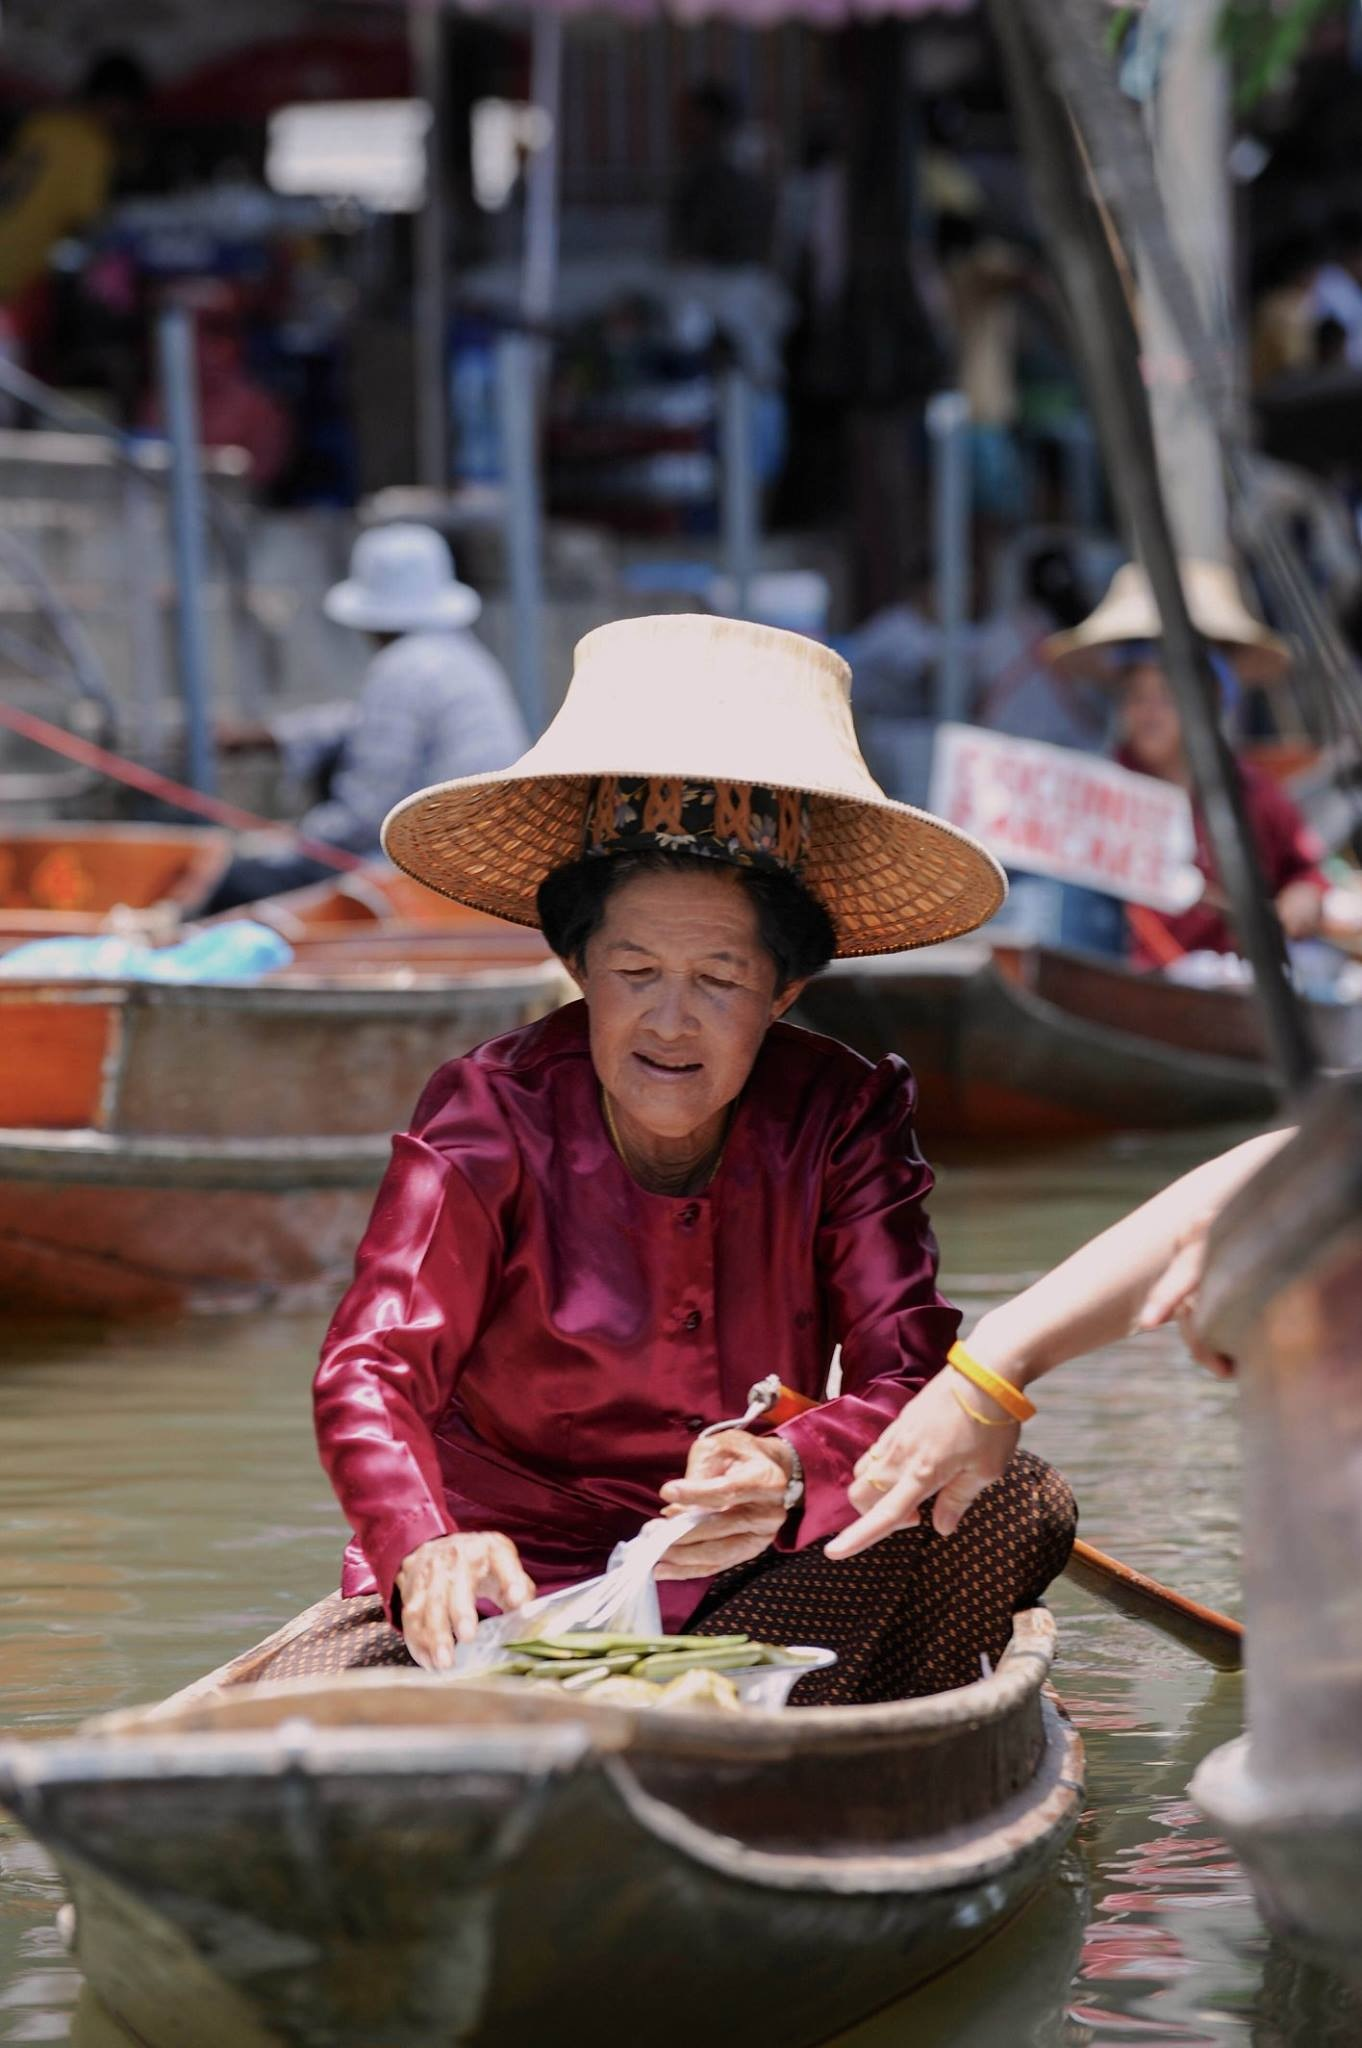 Floating market - Thailand 2017 by Robert Malin Young